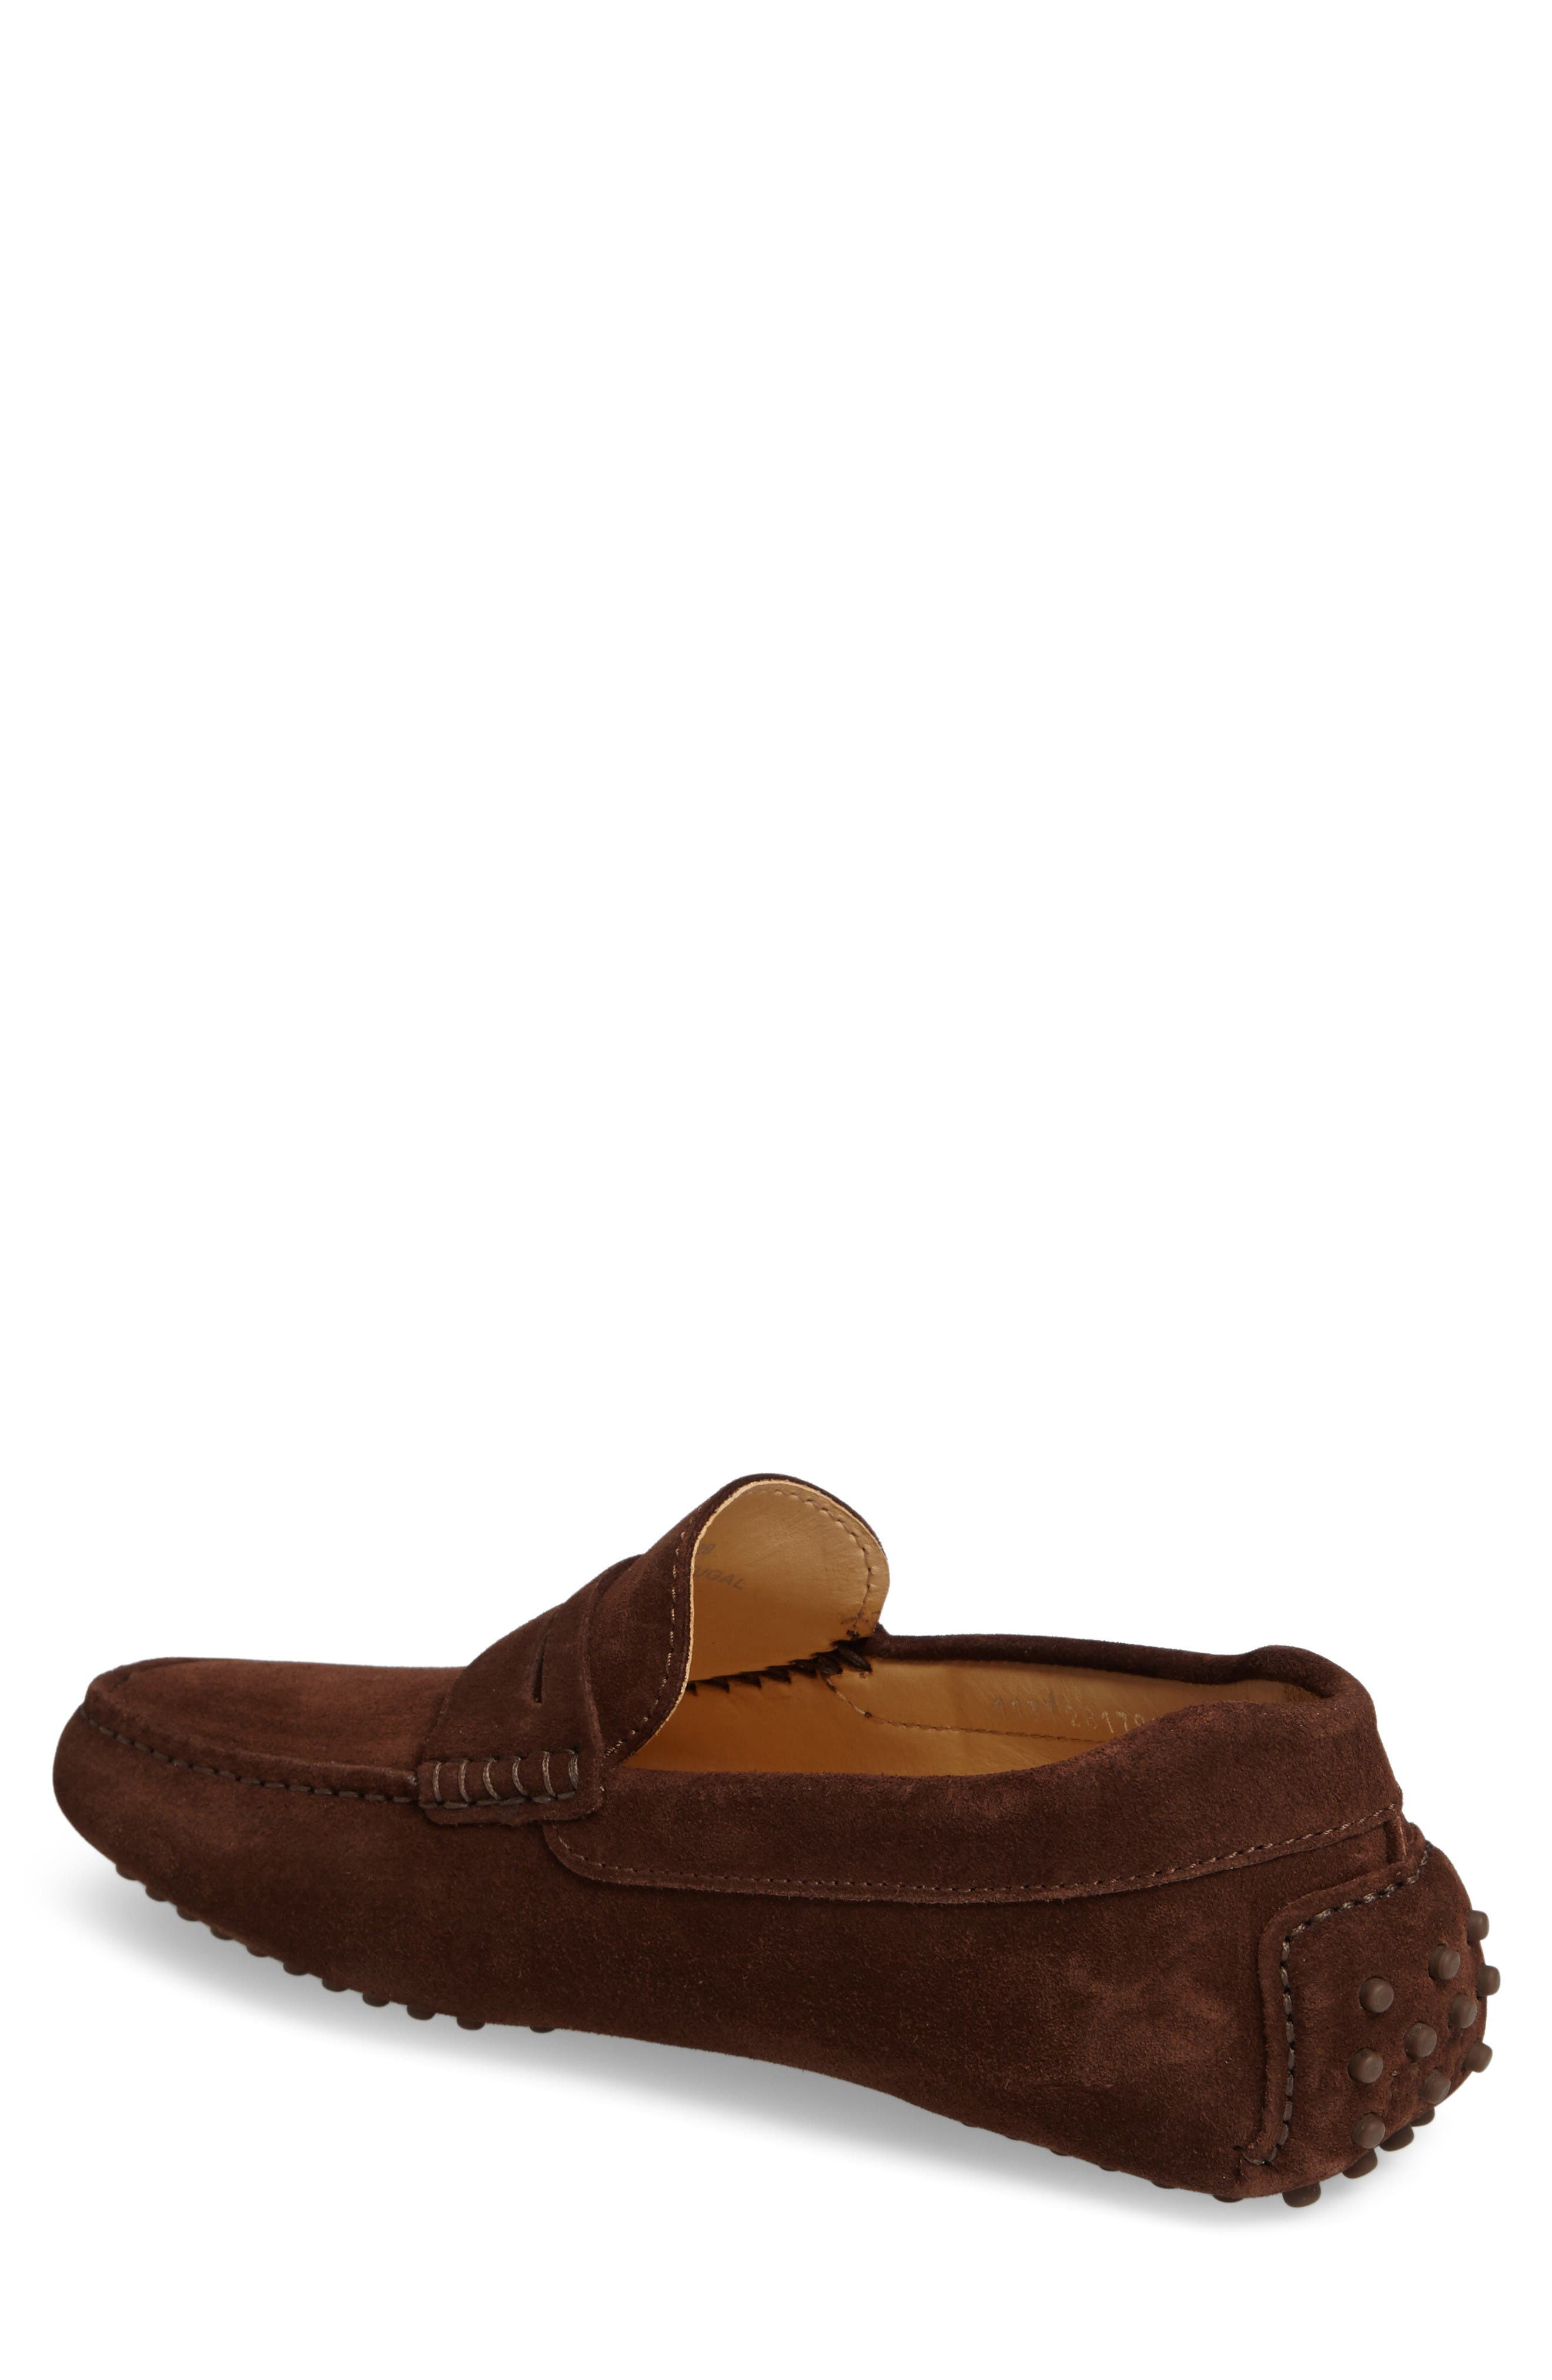 4908caff7b1d58 Men s JACK ERWIN Shoes